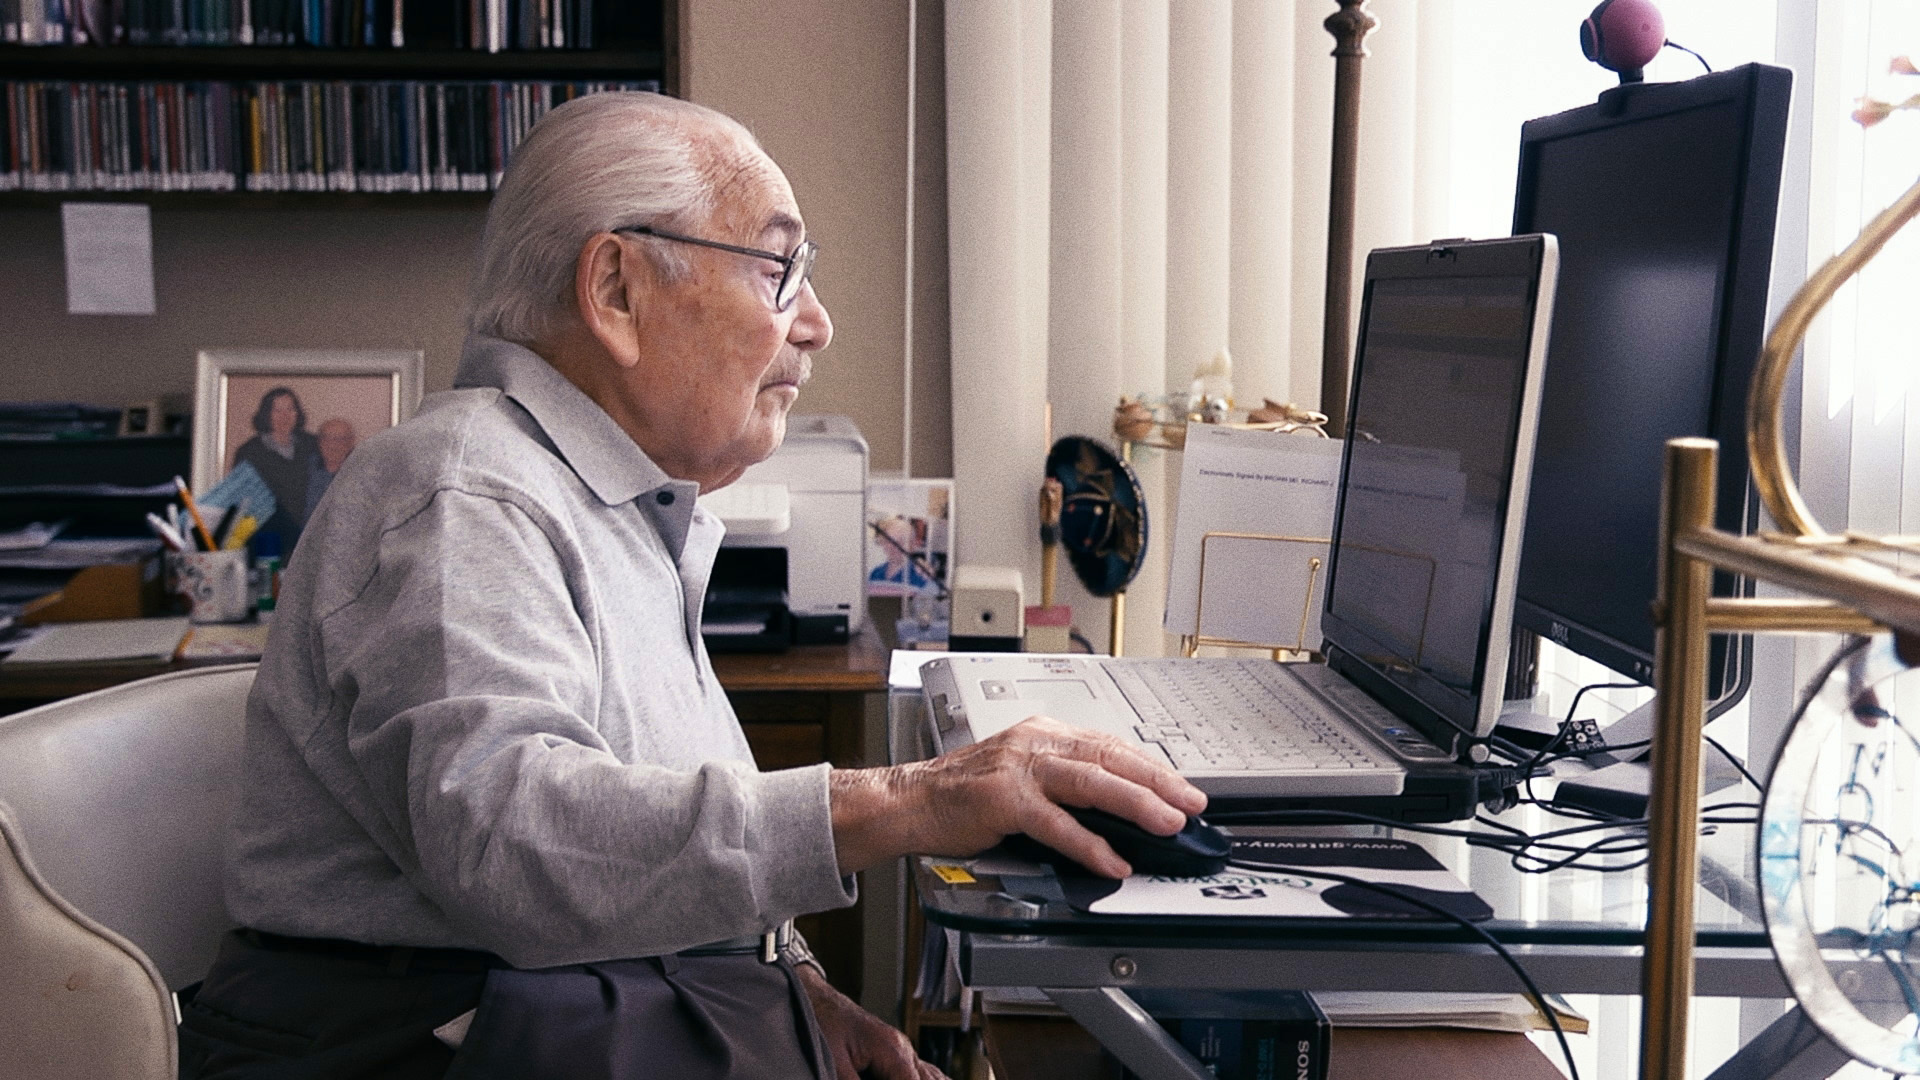 Old Man sitting in front of a laptop